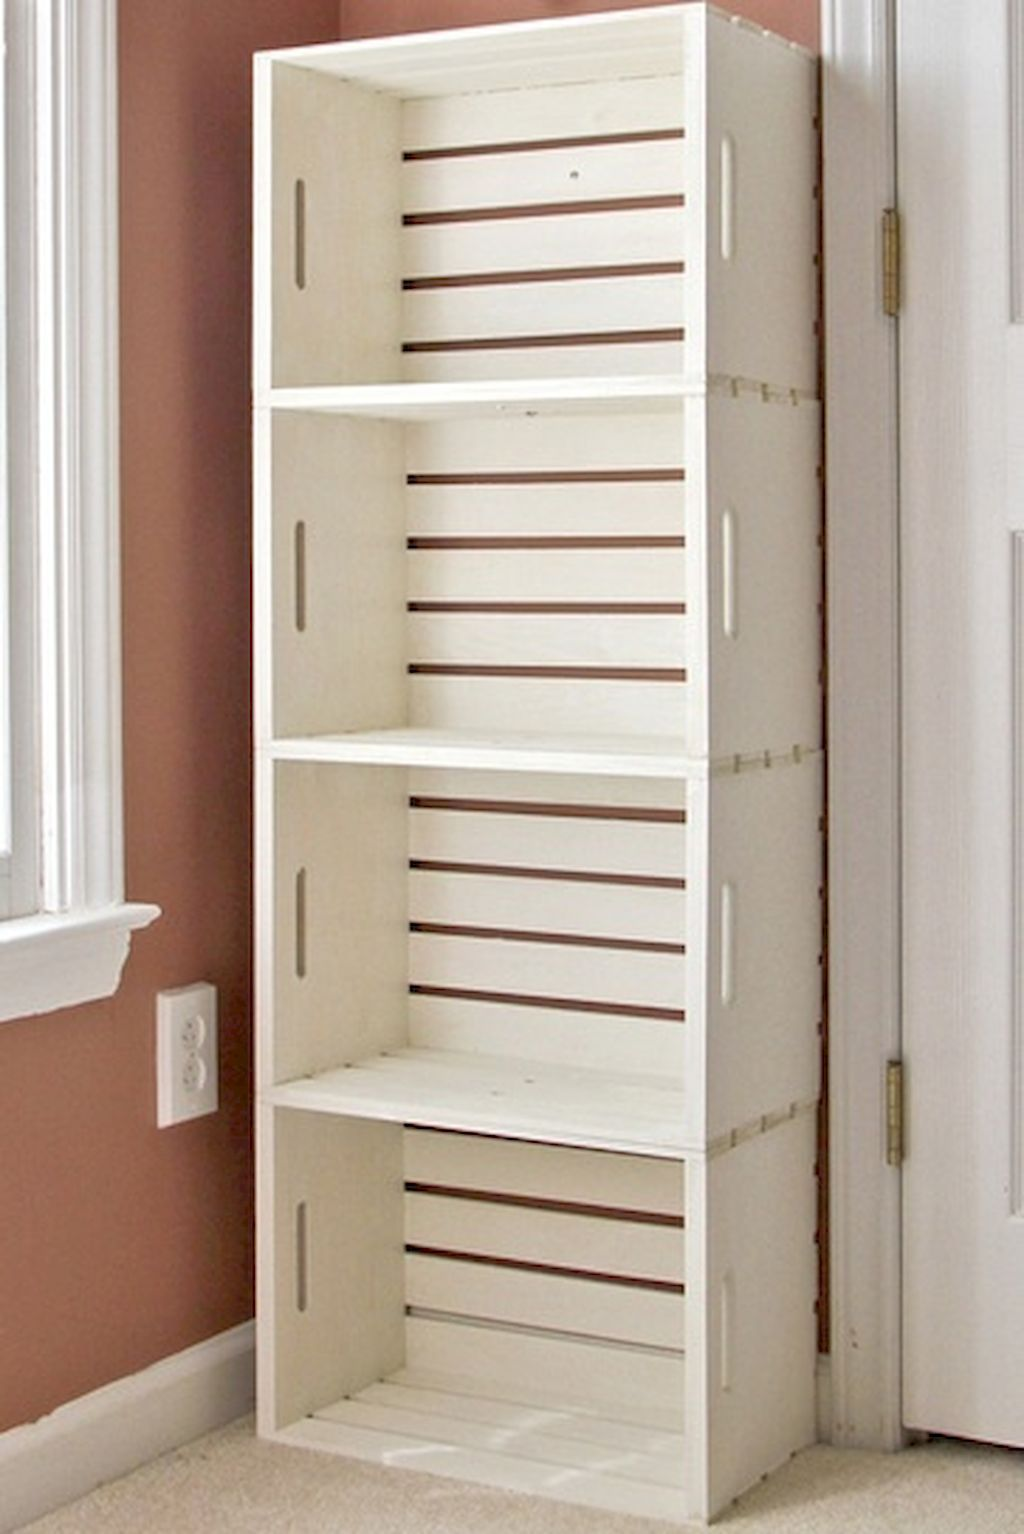 75 Clever Small Bathroom Storage And Organization Ideas  Small Amazing Shelving Ideas For Small Bathrooms Design Ideas